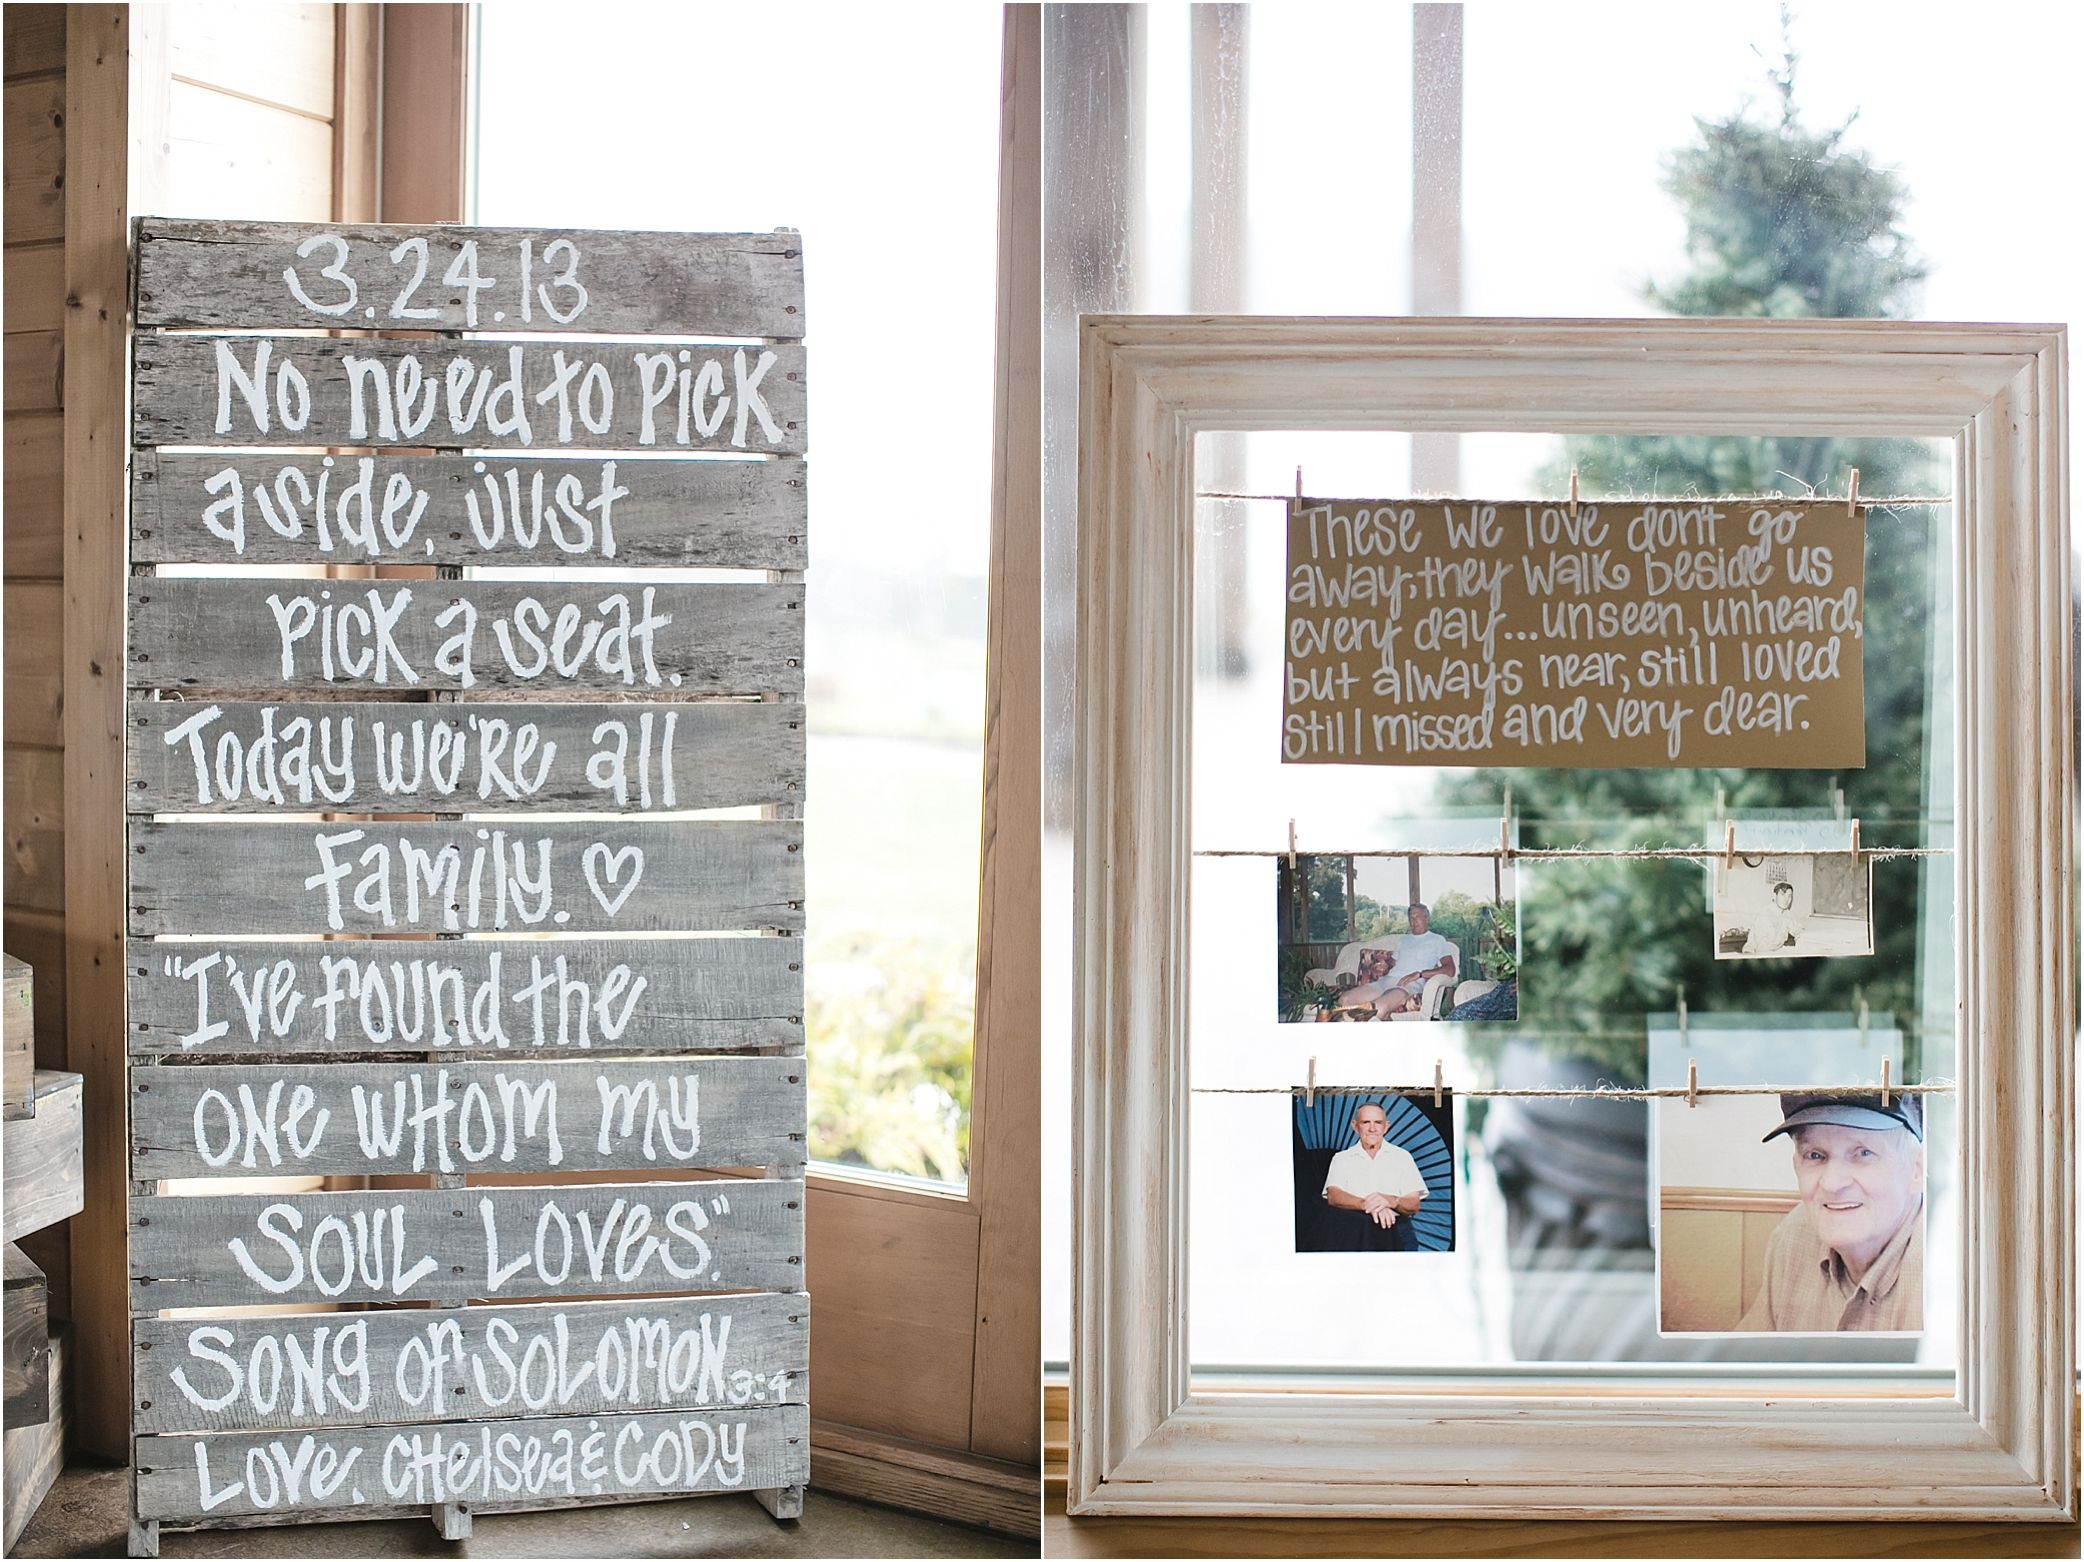 Rustic wedding idea write a message or a bible verse on an old